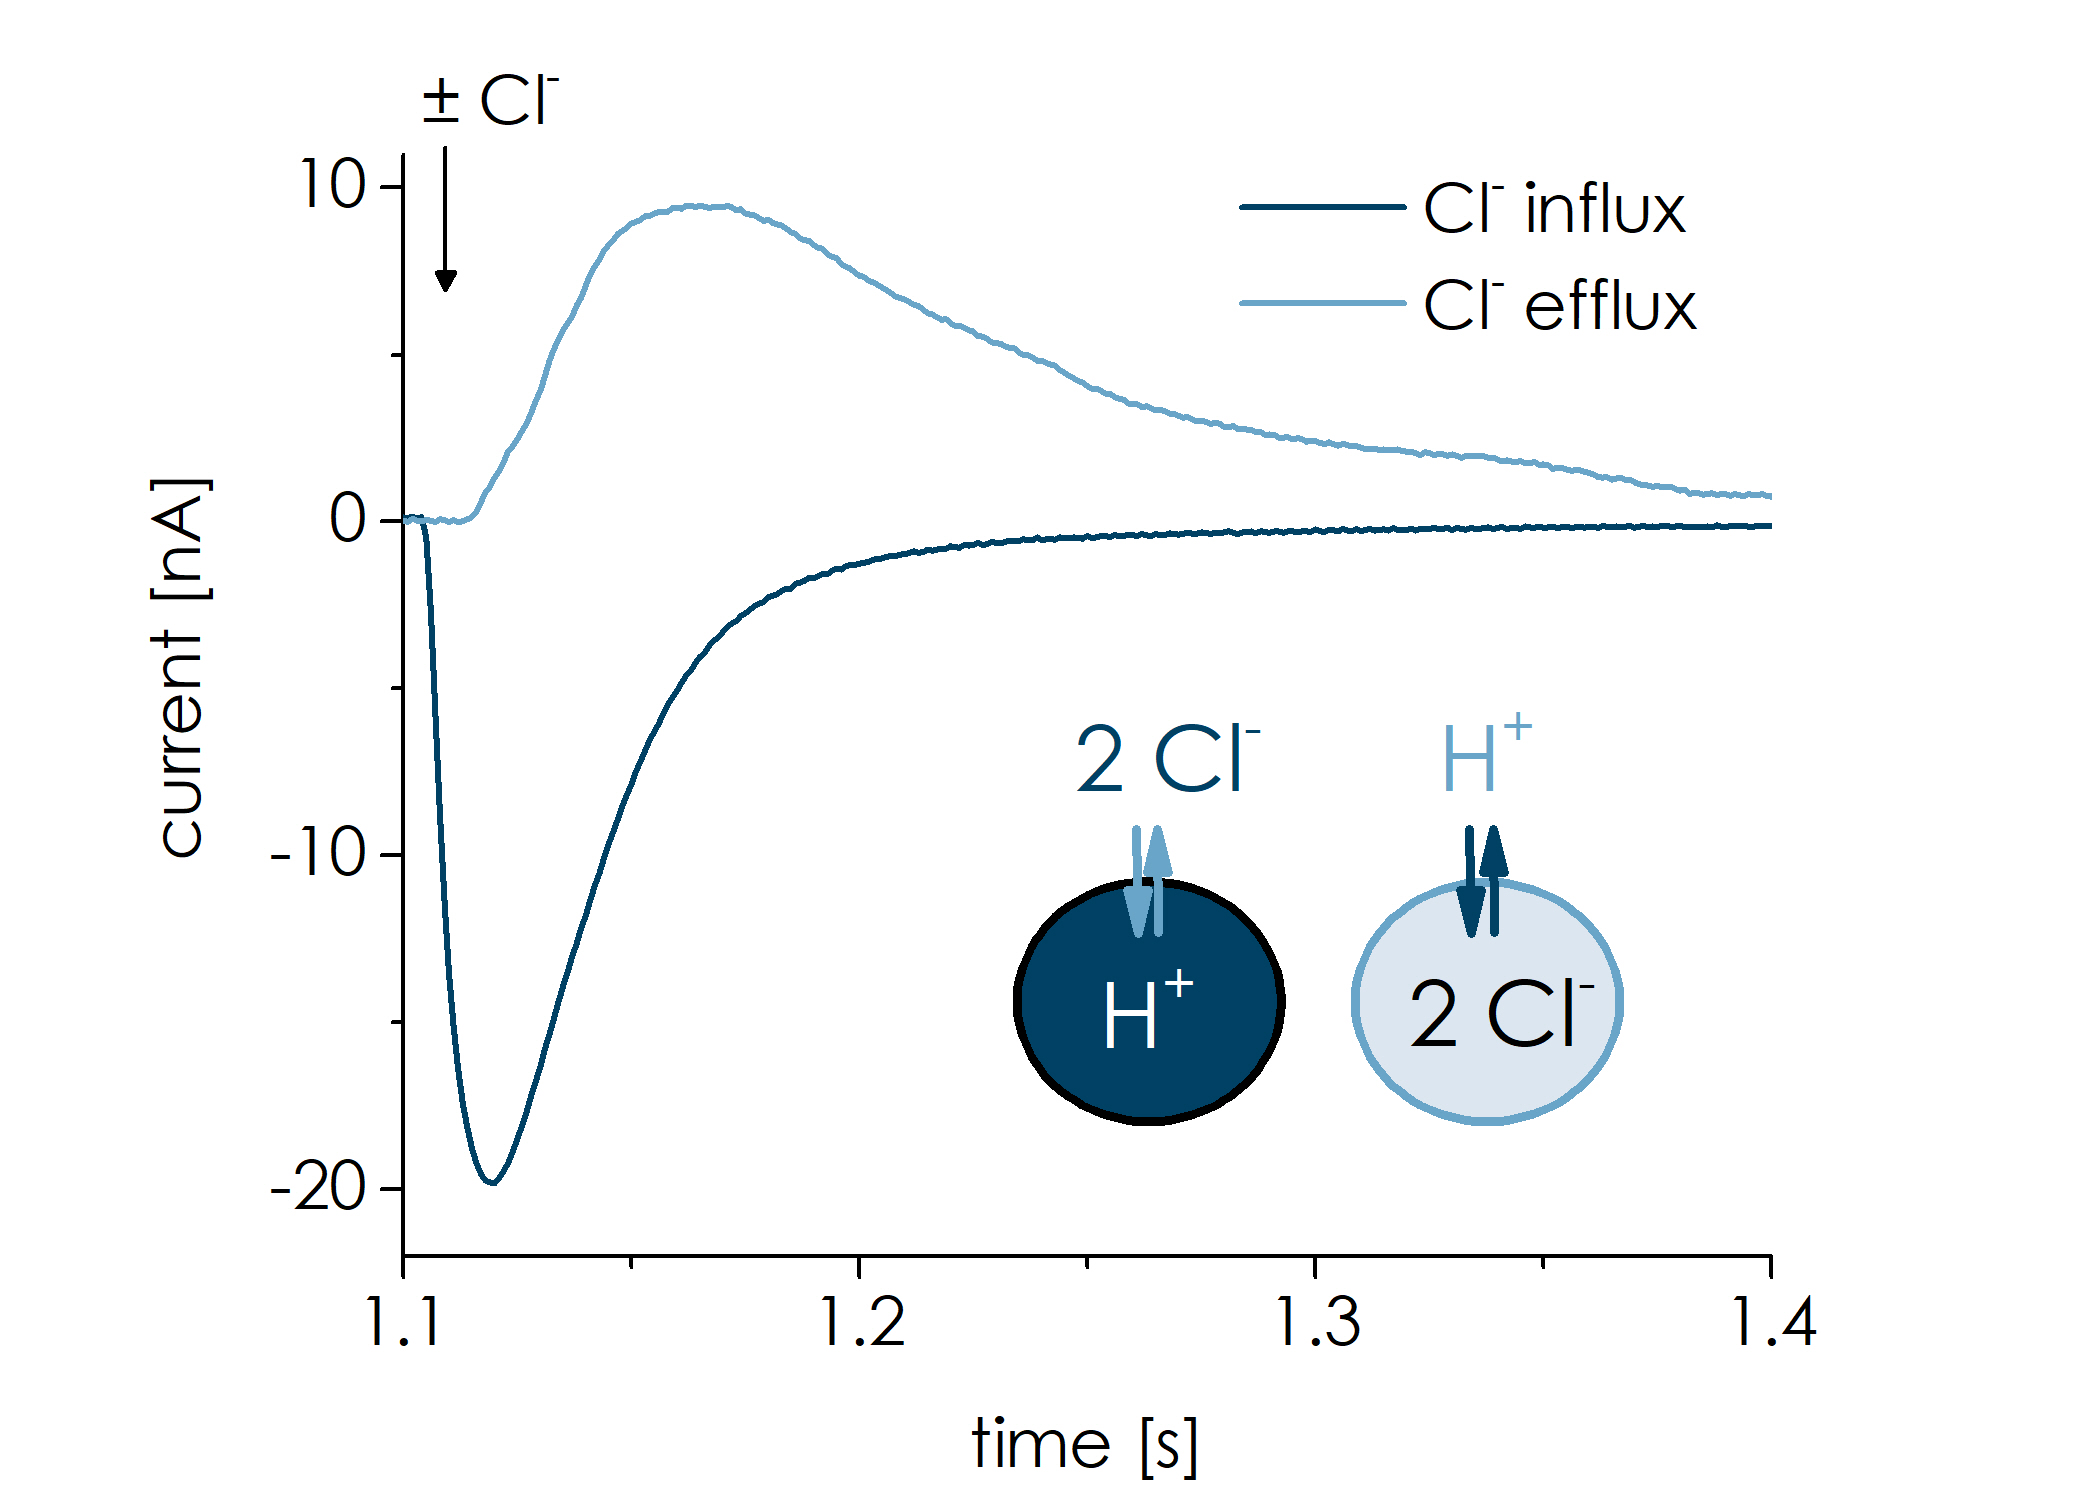 Clc Figure 1   transient currents Influx vs Efflux